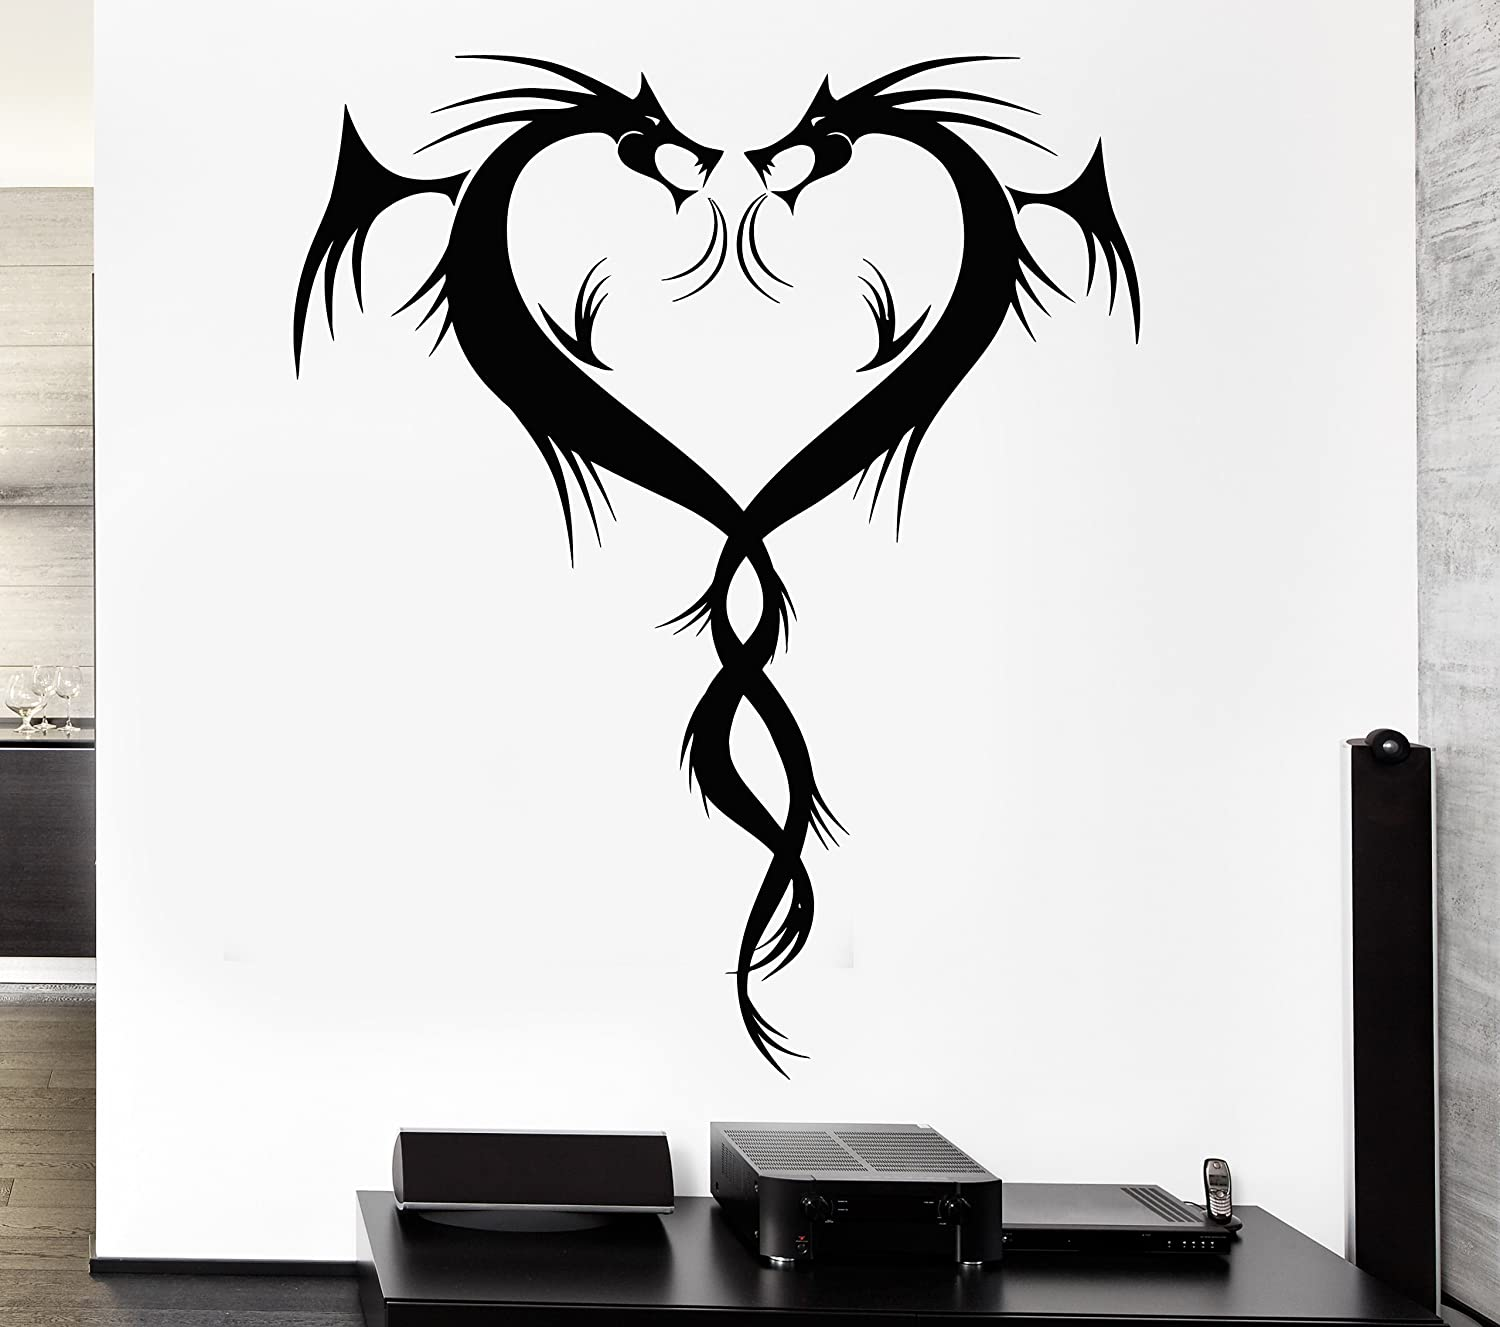 Beautiful dragon wall decals easy to apply and remove this decal is made per order and cut in house available colors are black white flame red dark red orange pink dark blue light blue dark green amipublicfo Image collections